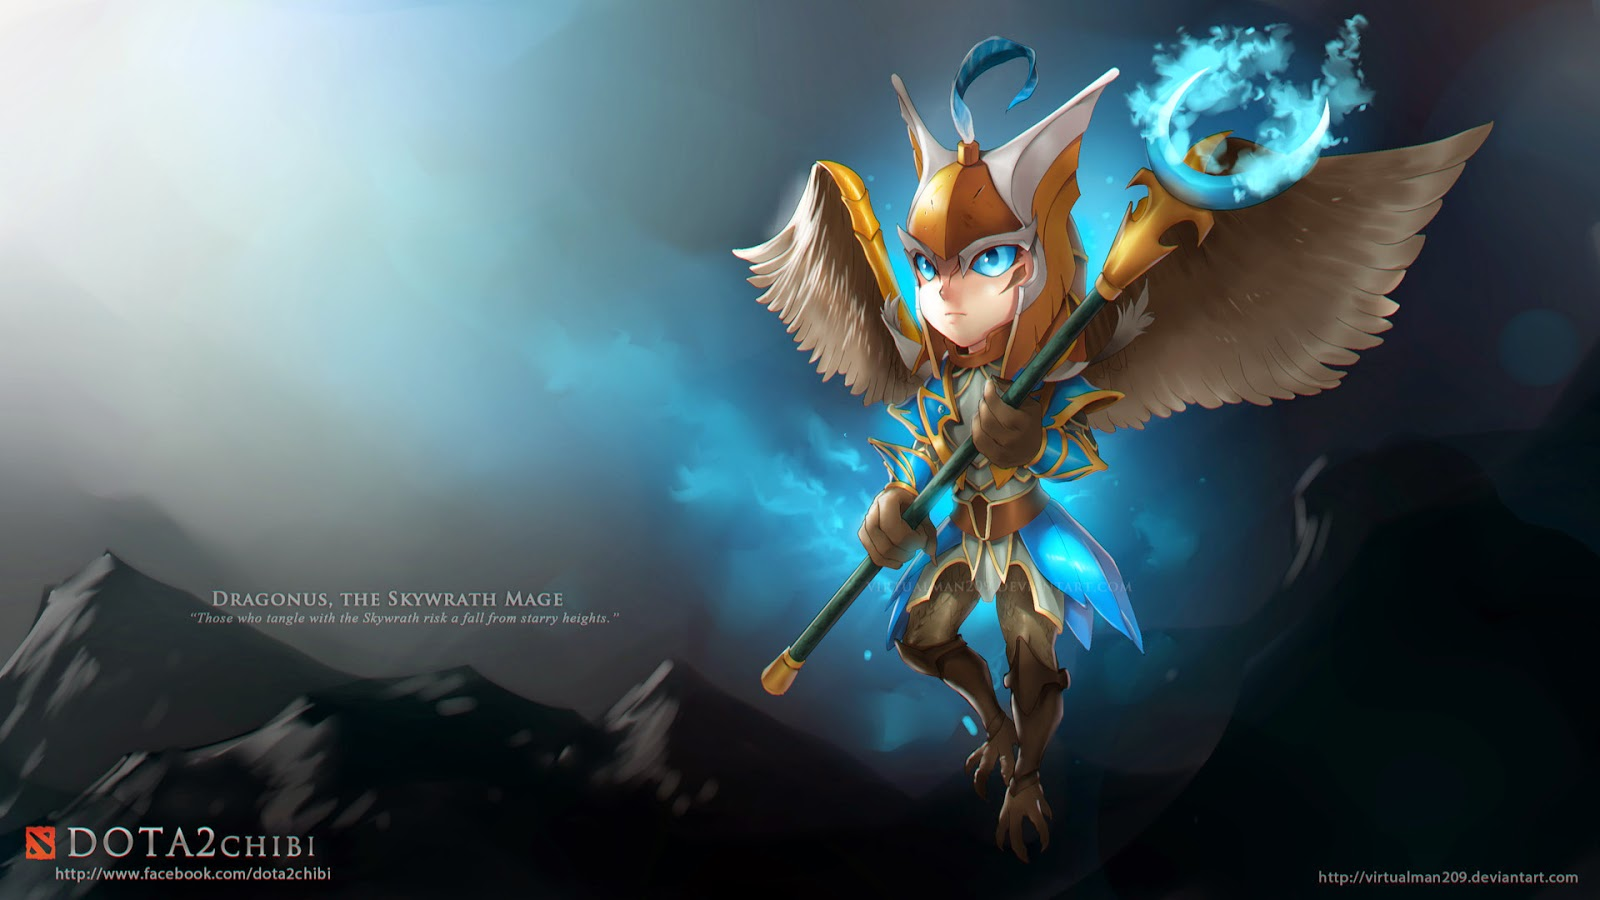 dota 2 chibi wallpaper full hd for desktop